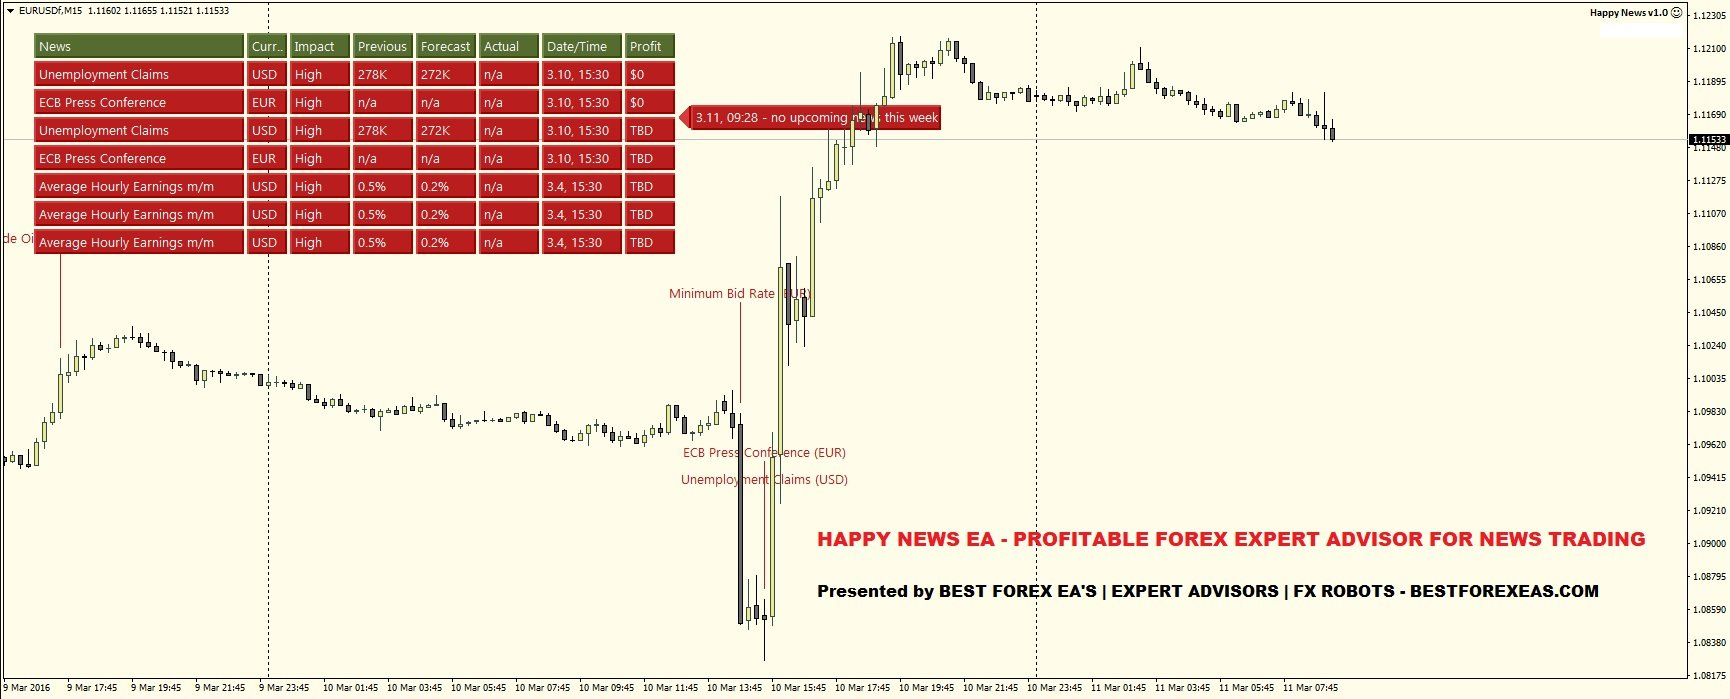 Happy News EA Review - Profitable FX Expert Advisor For News Trading And Reliable Forex Robot For Metatrader 4 (MT4) Created By Happy Forex Group